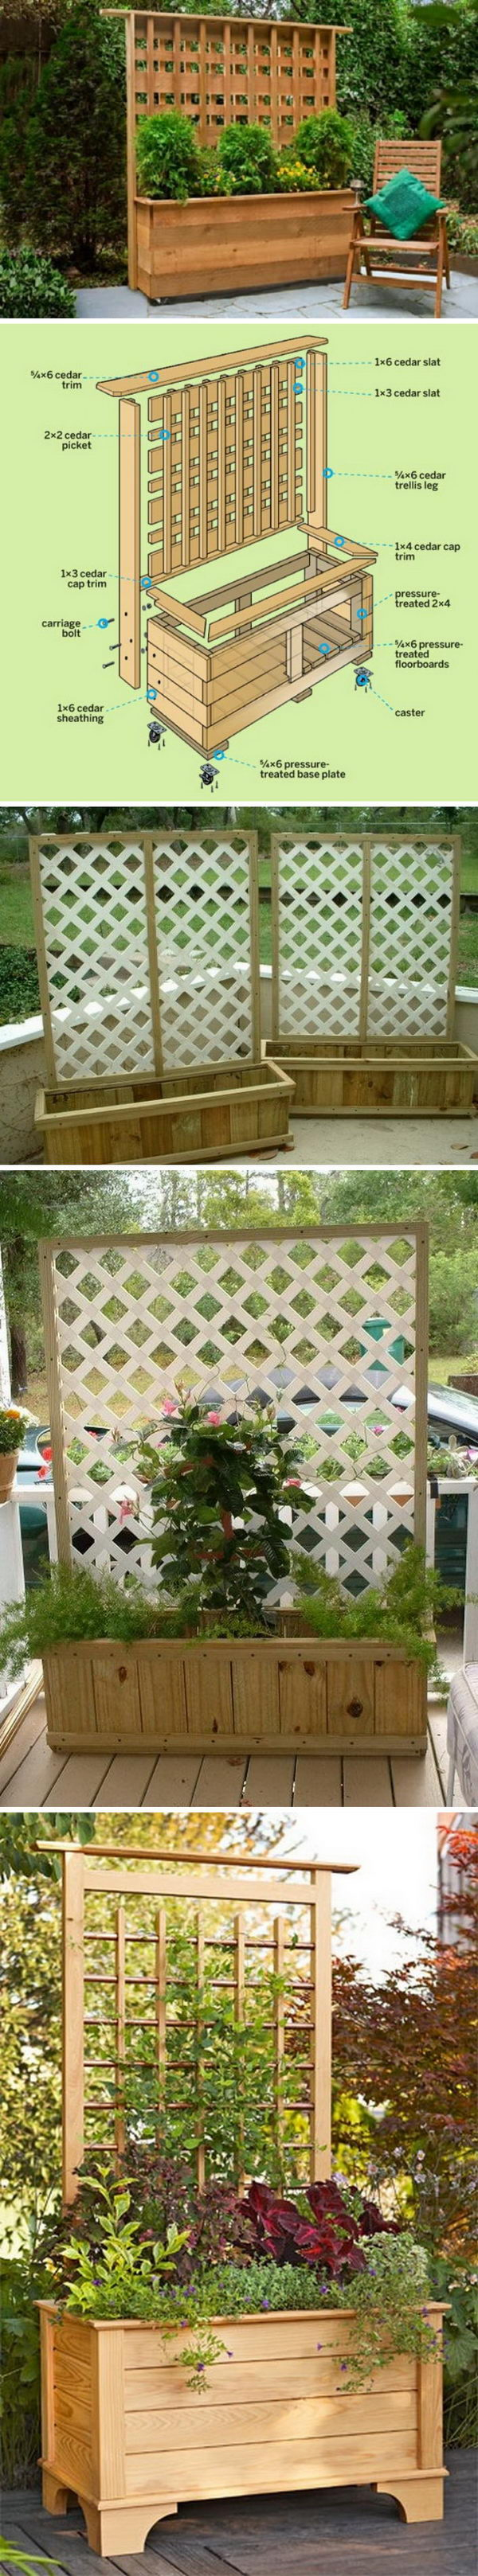 DIY Privacy Planter with Trellis.